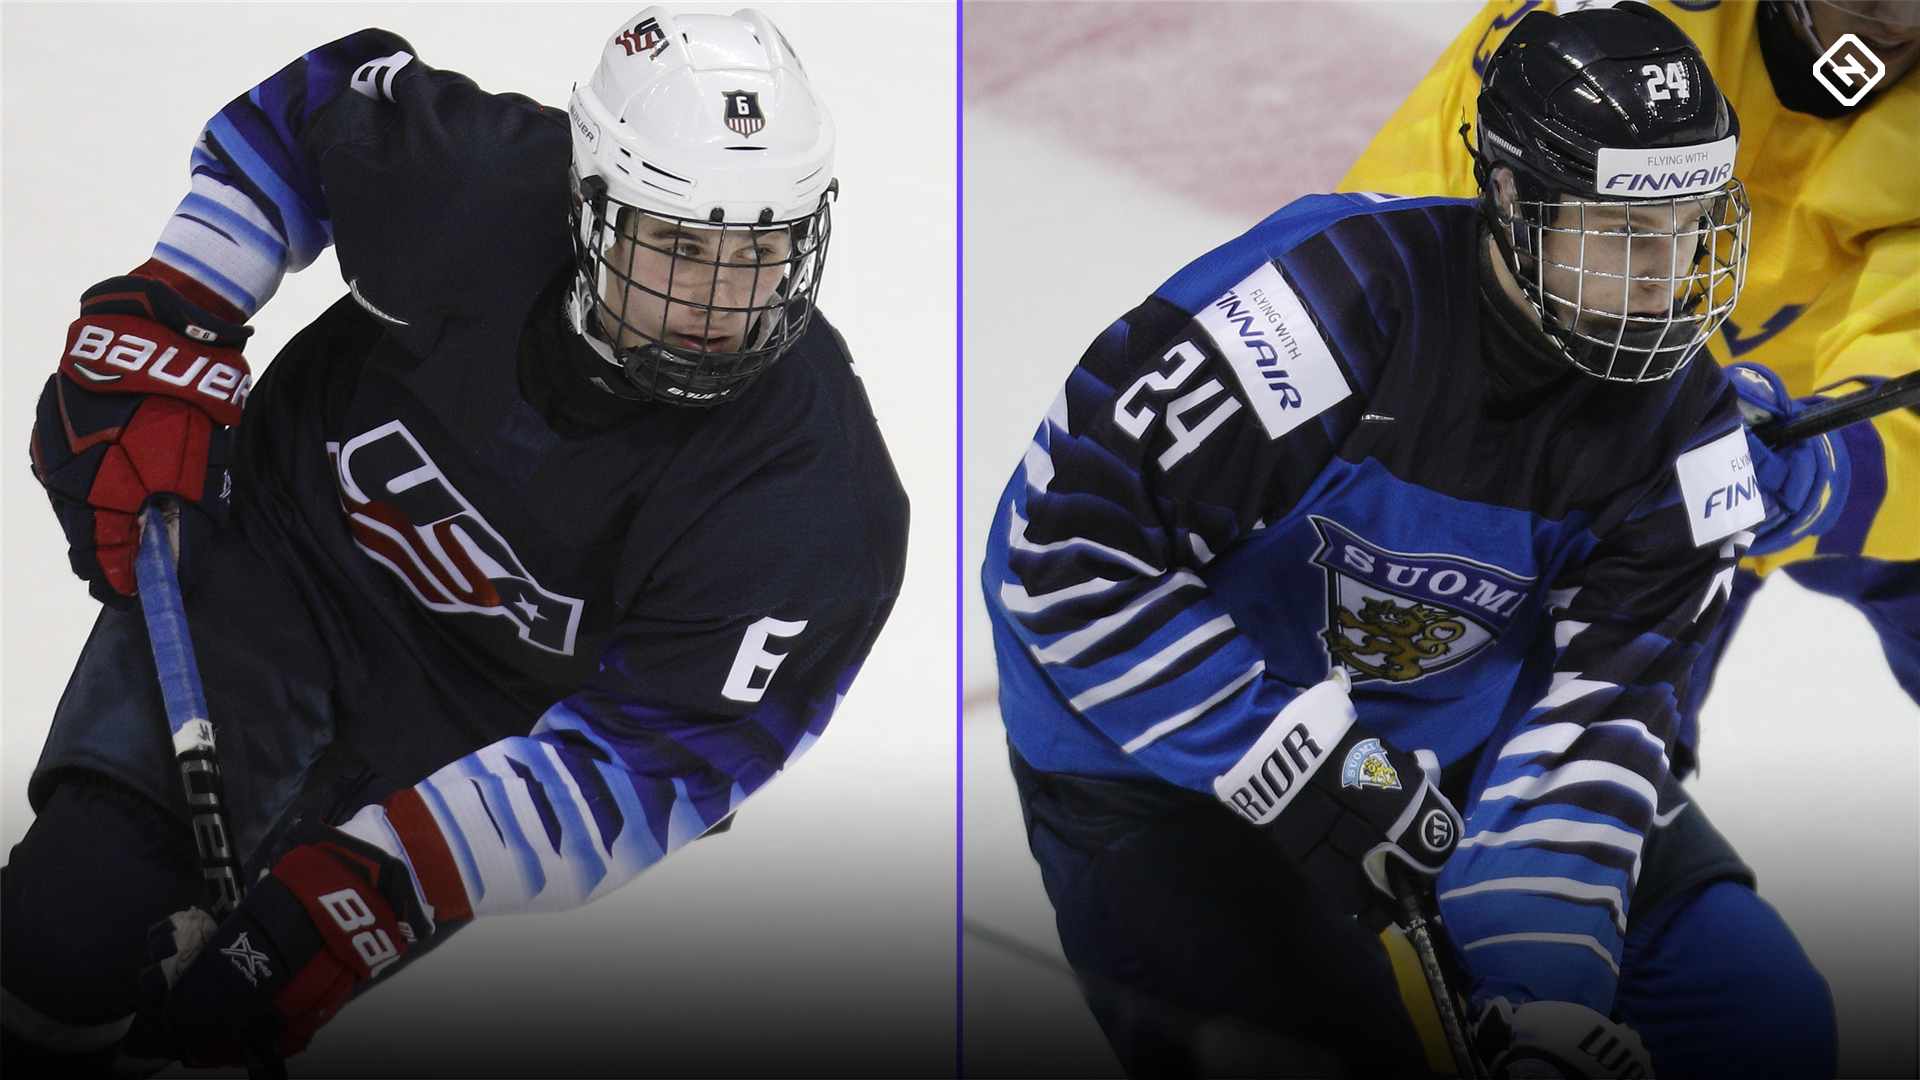 Nhl Draft Big Board Latest Rankings Of Top 31 Prospects In 2019